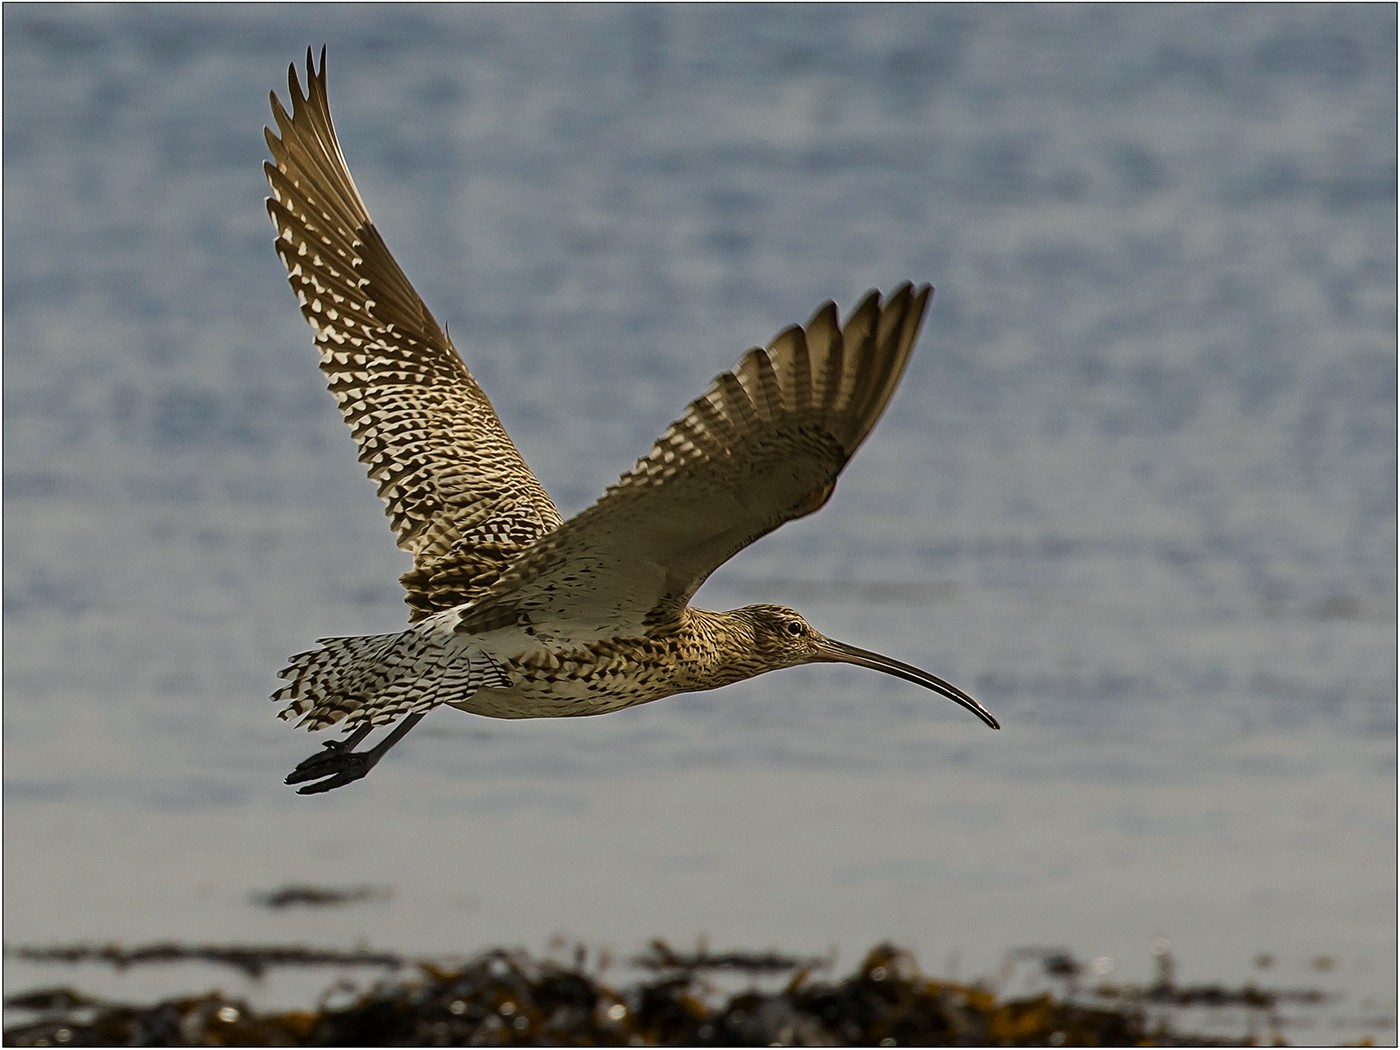 Curlew on Seashore